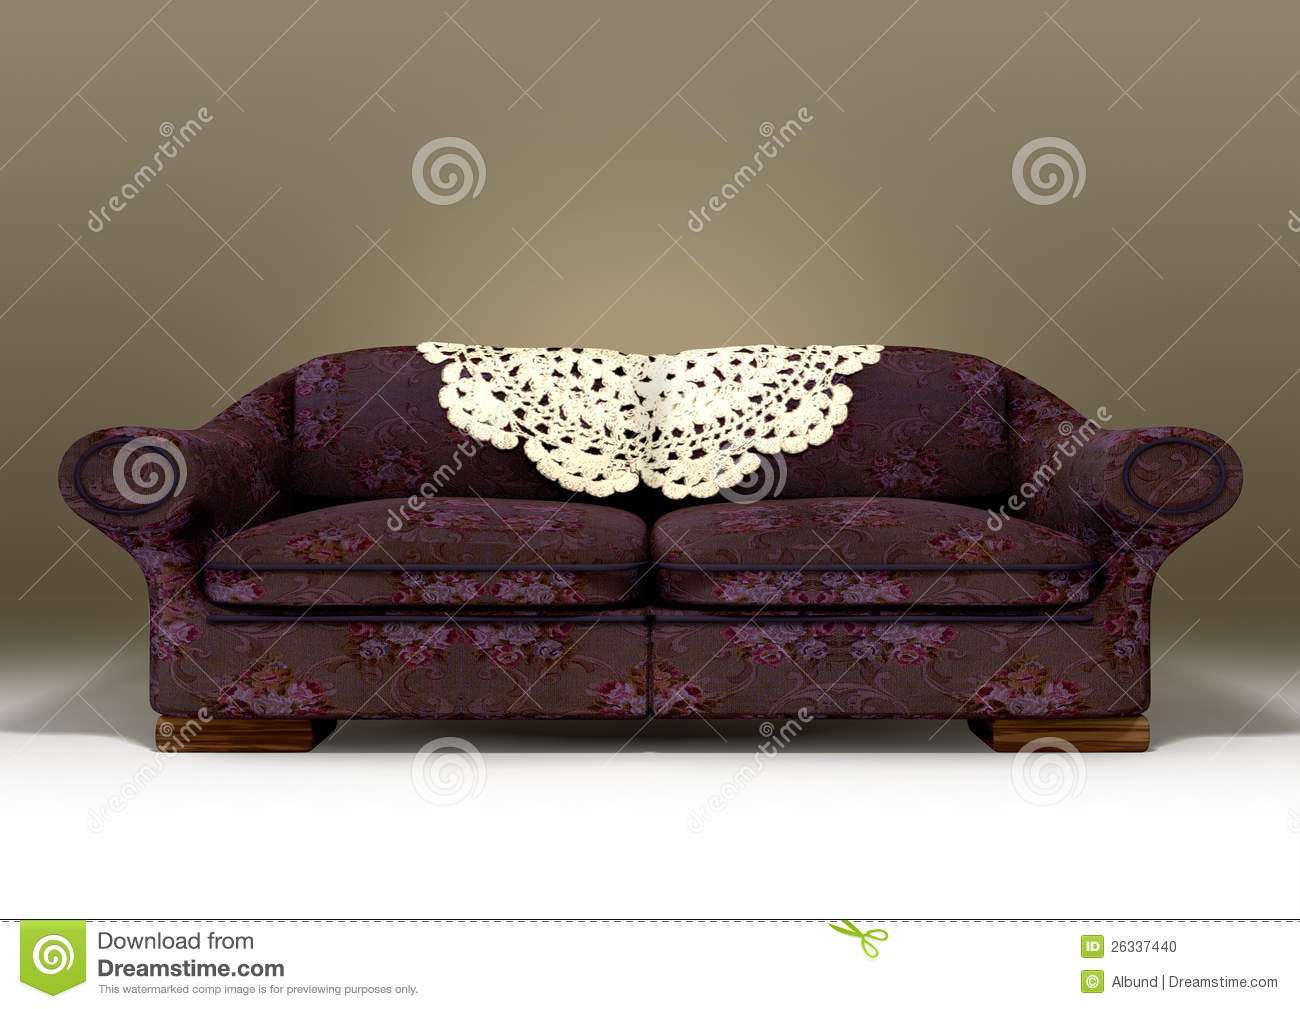 Old floral sofa stock illustration image of couch for 80s floral couch